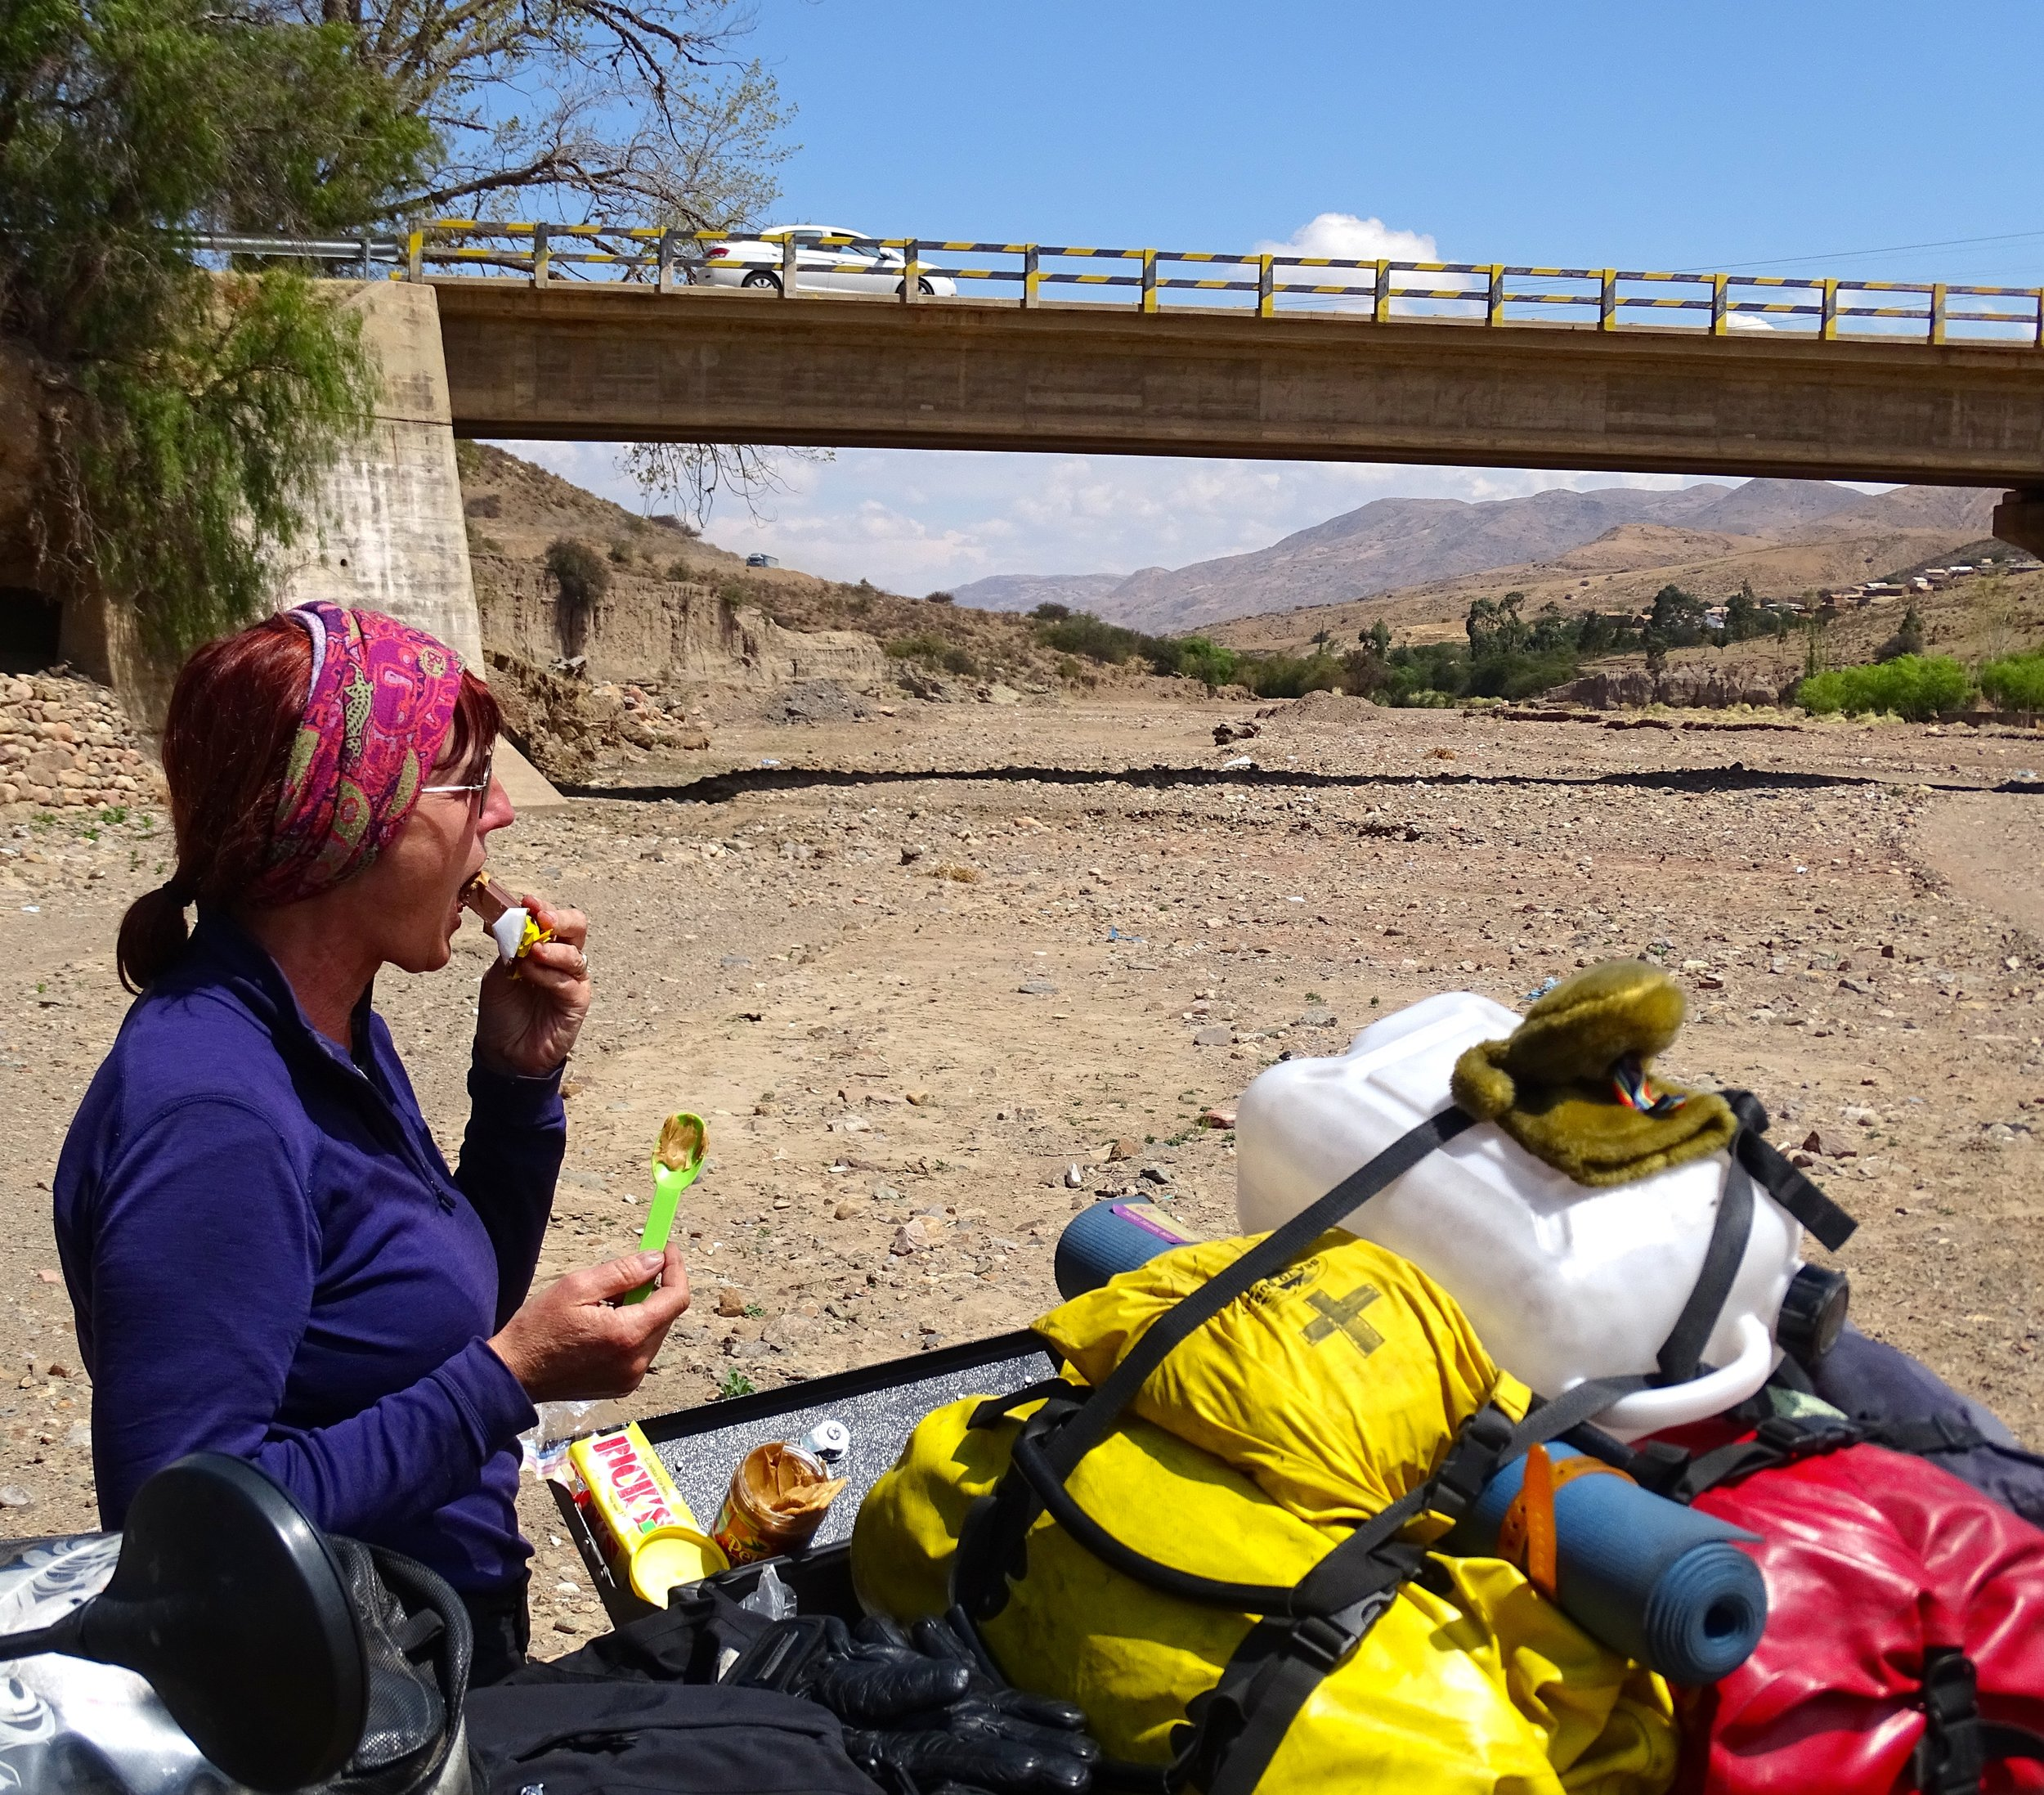 Our lunch stop that day was a mostly-dry riverbed.  After crossing that bridge we took a hard left, and followed the rocky road to a good parking spot, which turned out to be the riverbed.